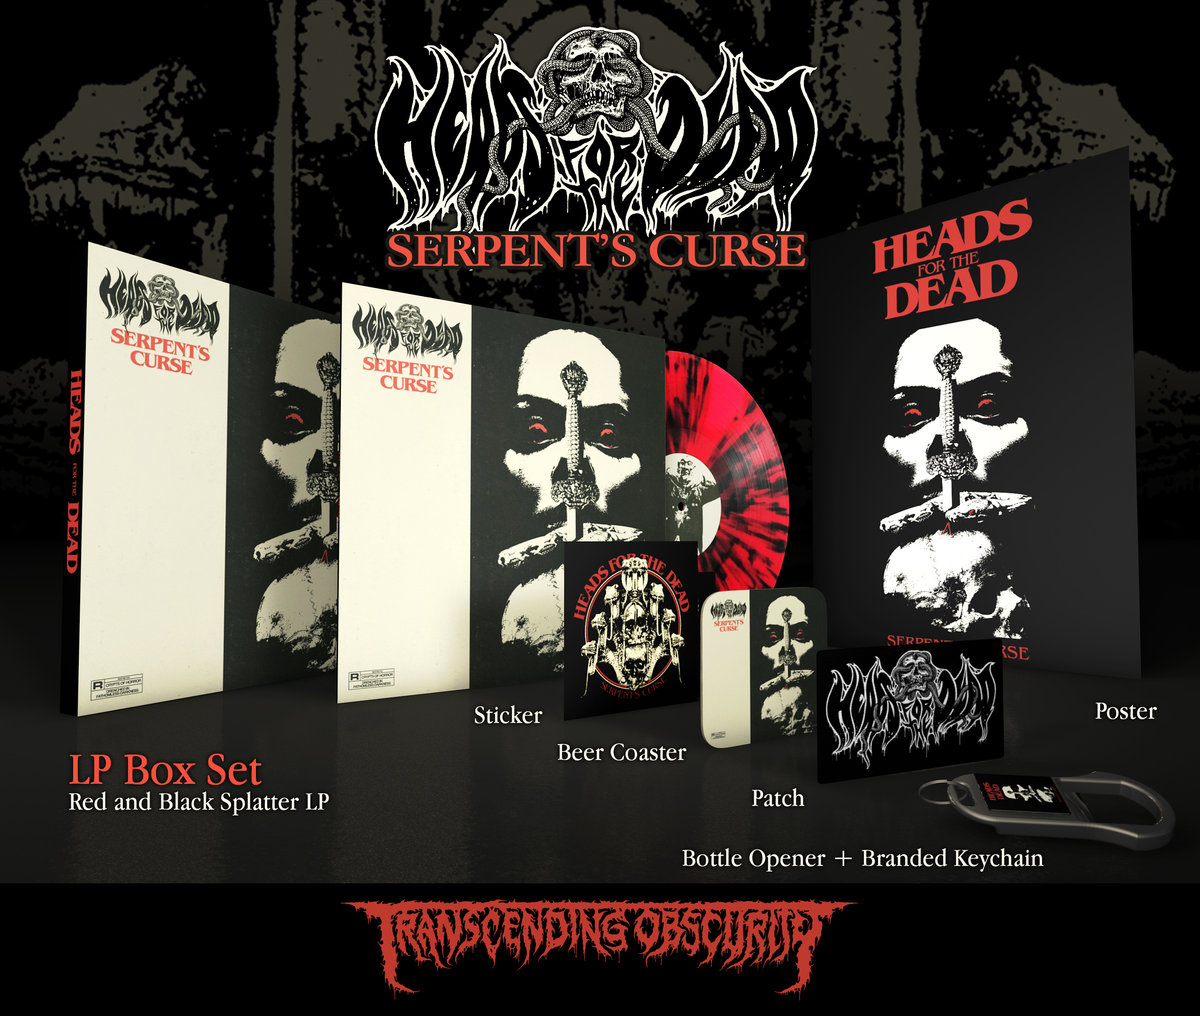 HEADS FOR THE DEAD - Serpent's Curse Red LP Box Set (Limited to 100) REPRESS